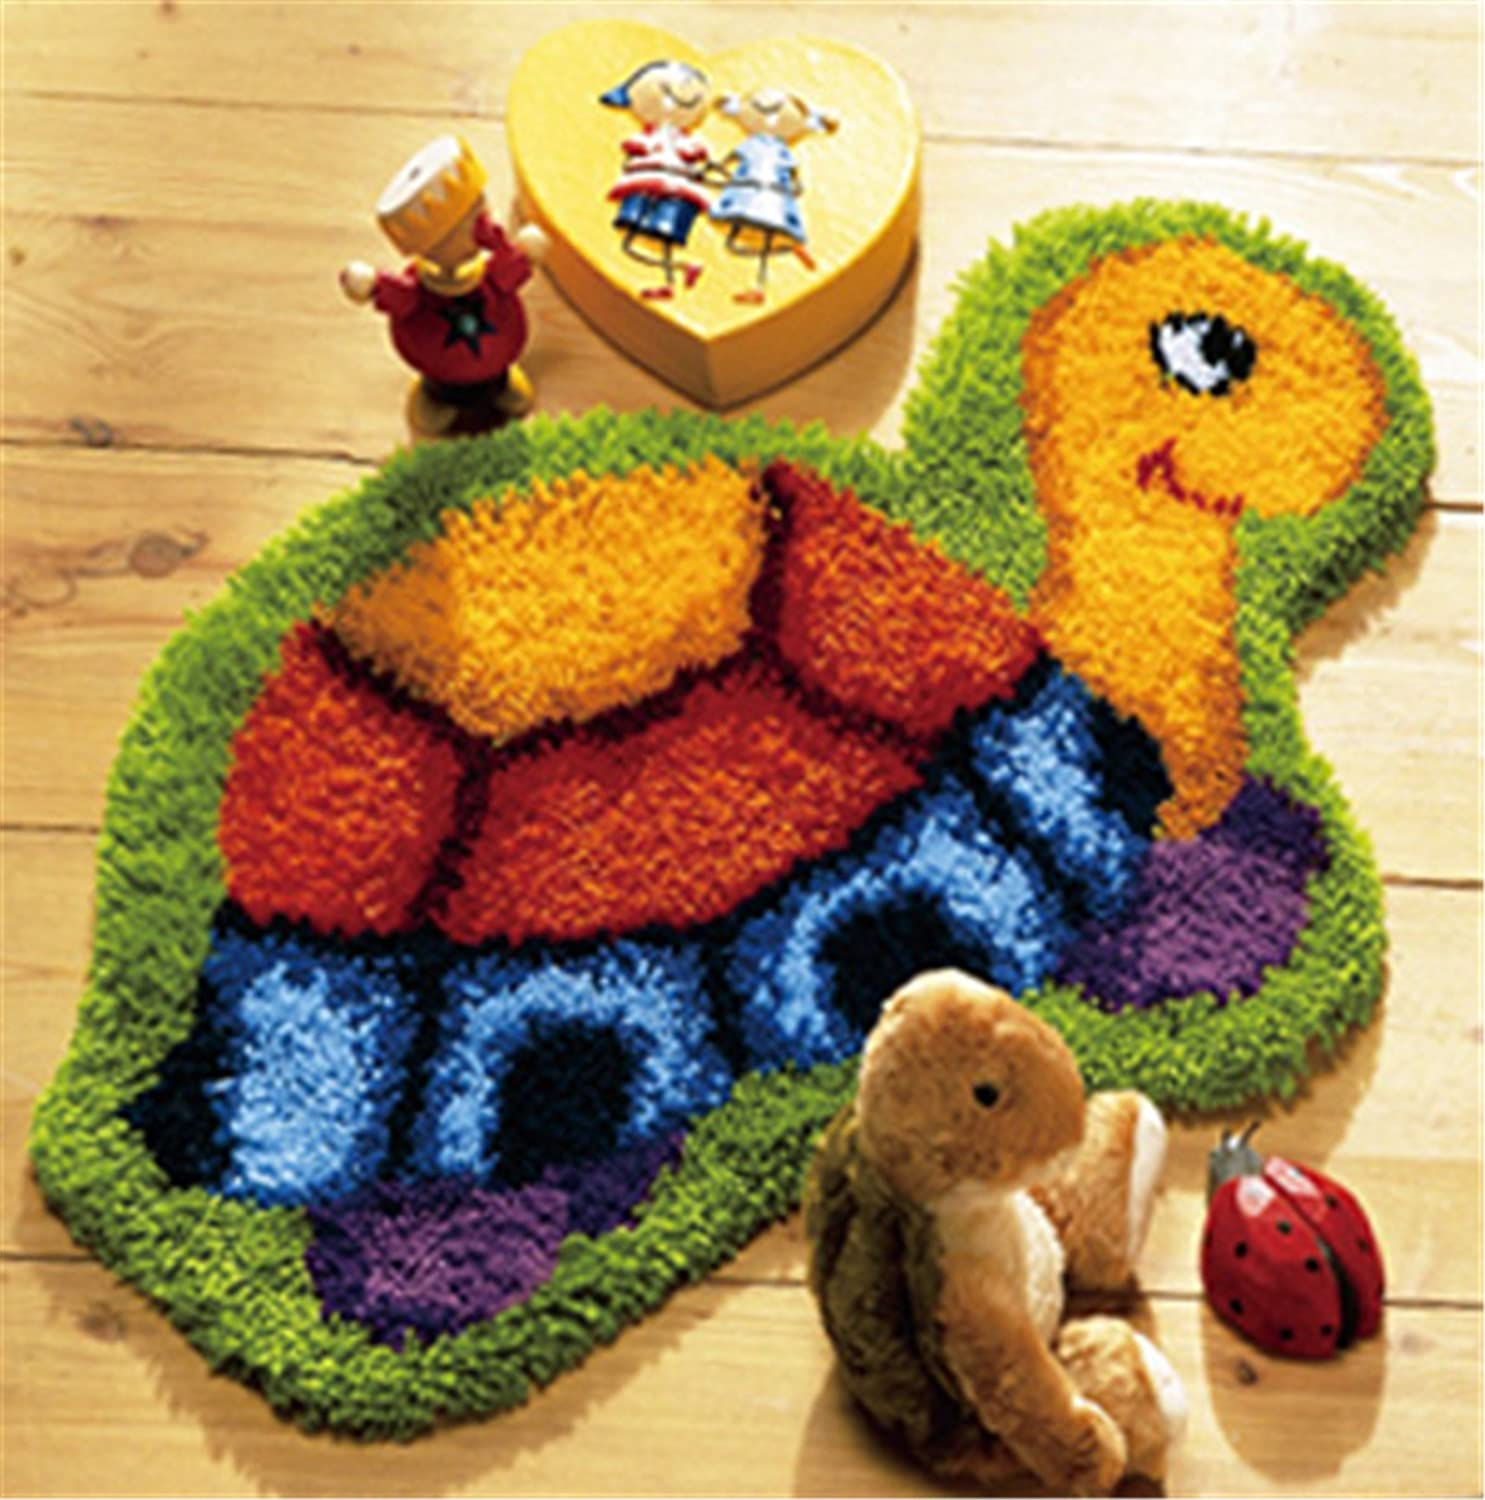 Beyond Your Thoughts DIY Latch Hook Kit Rug Making Crafts for Kids/Adults 20 inch X 16 inch Tortoise 007